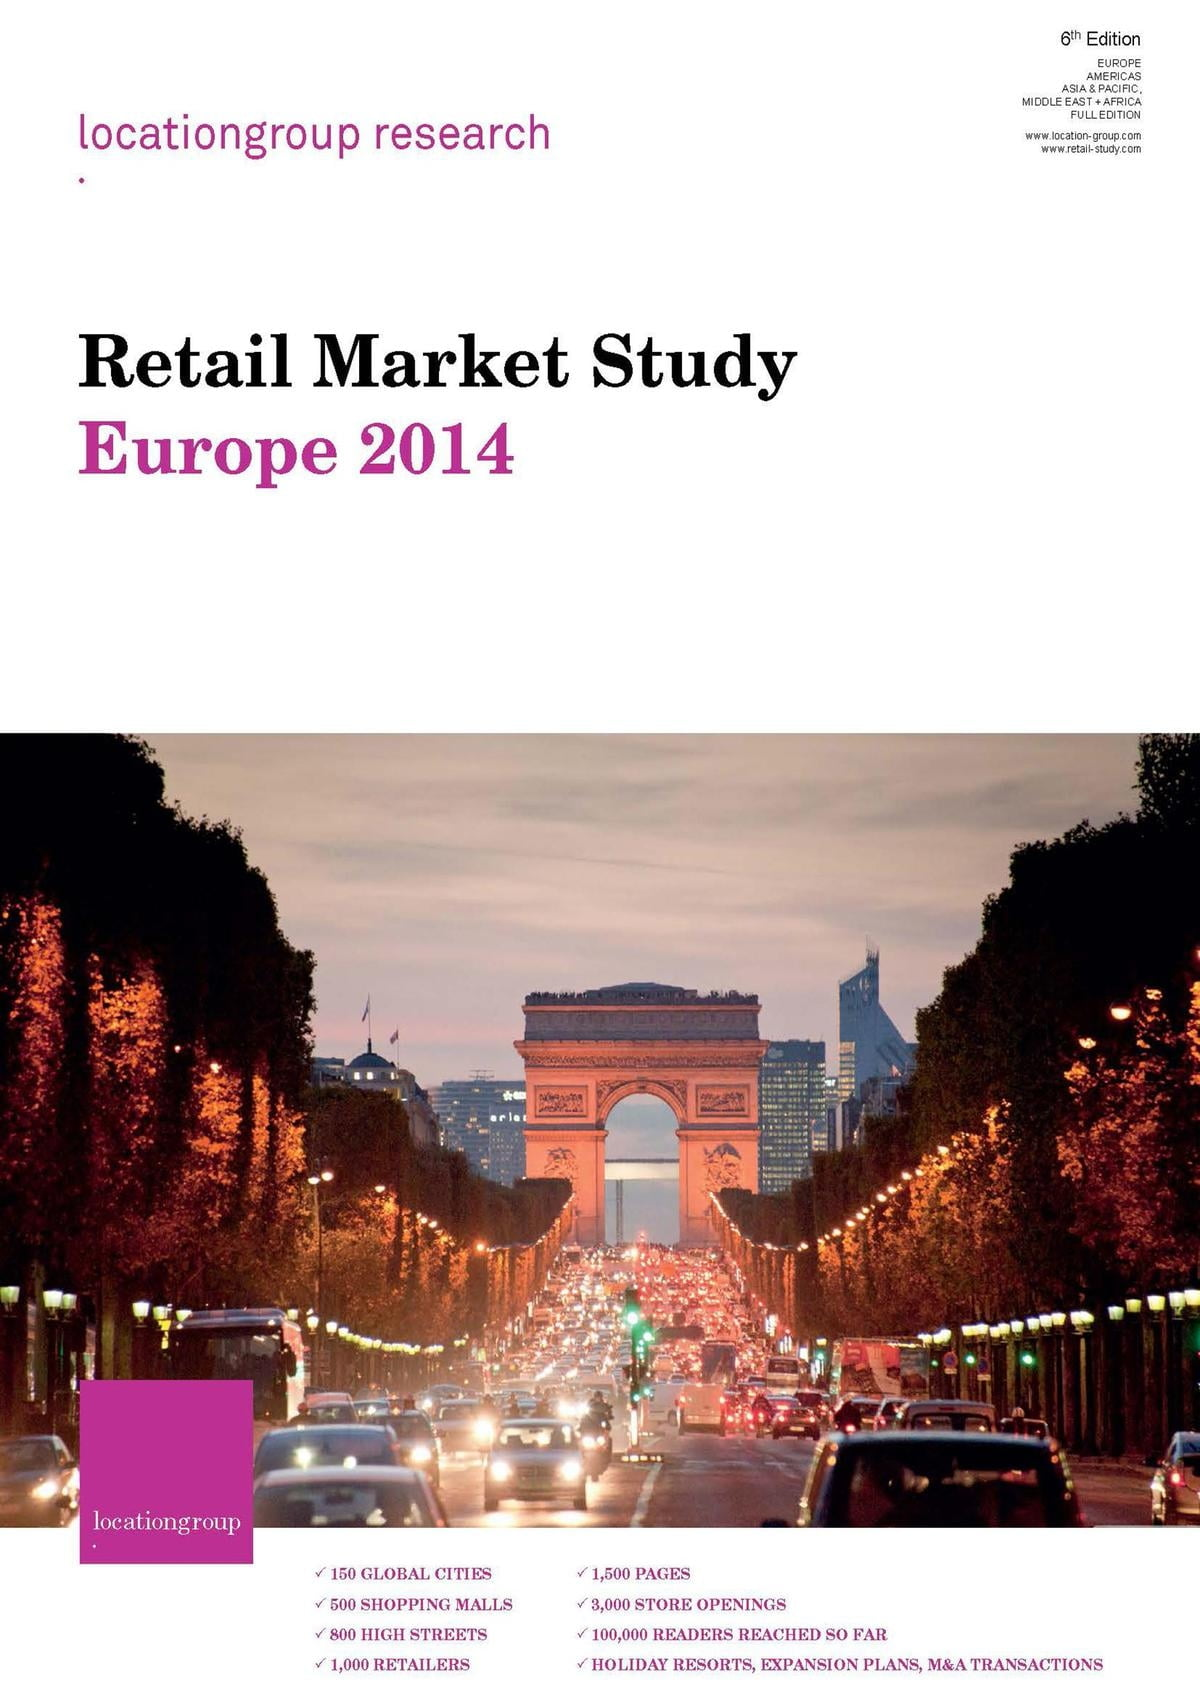 Retail Market Study Europe 2014 ebook by Location Group Research Rakuten Kobo